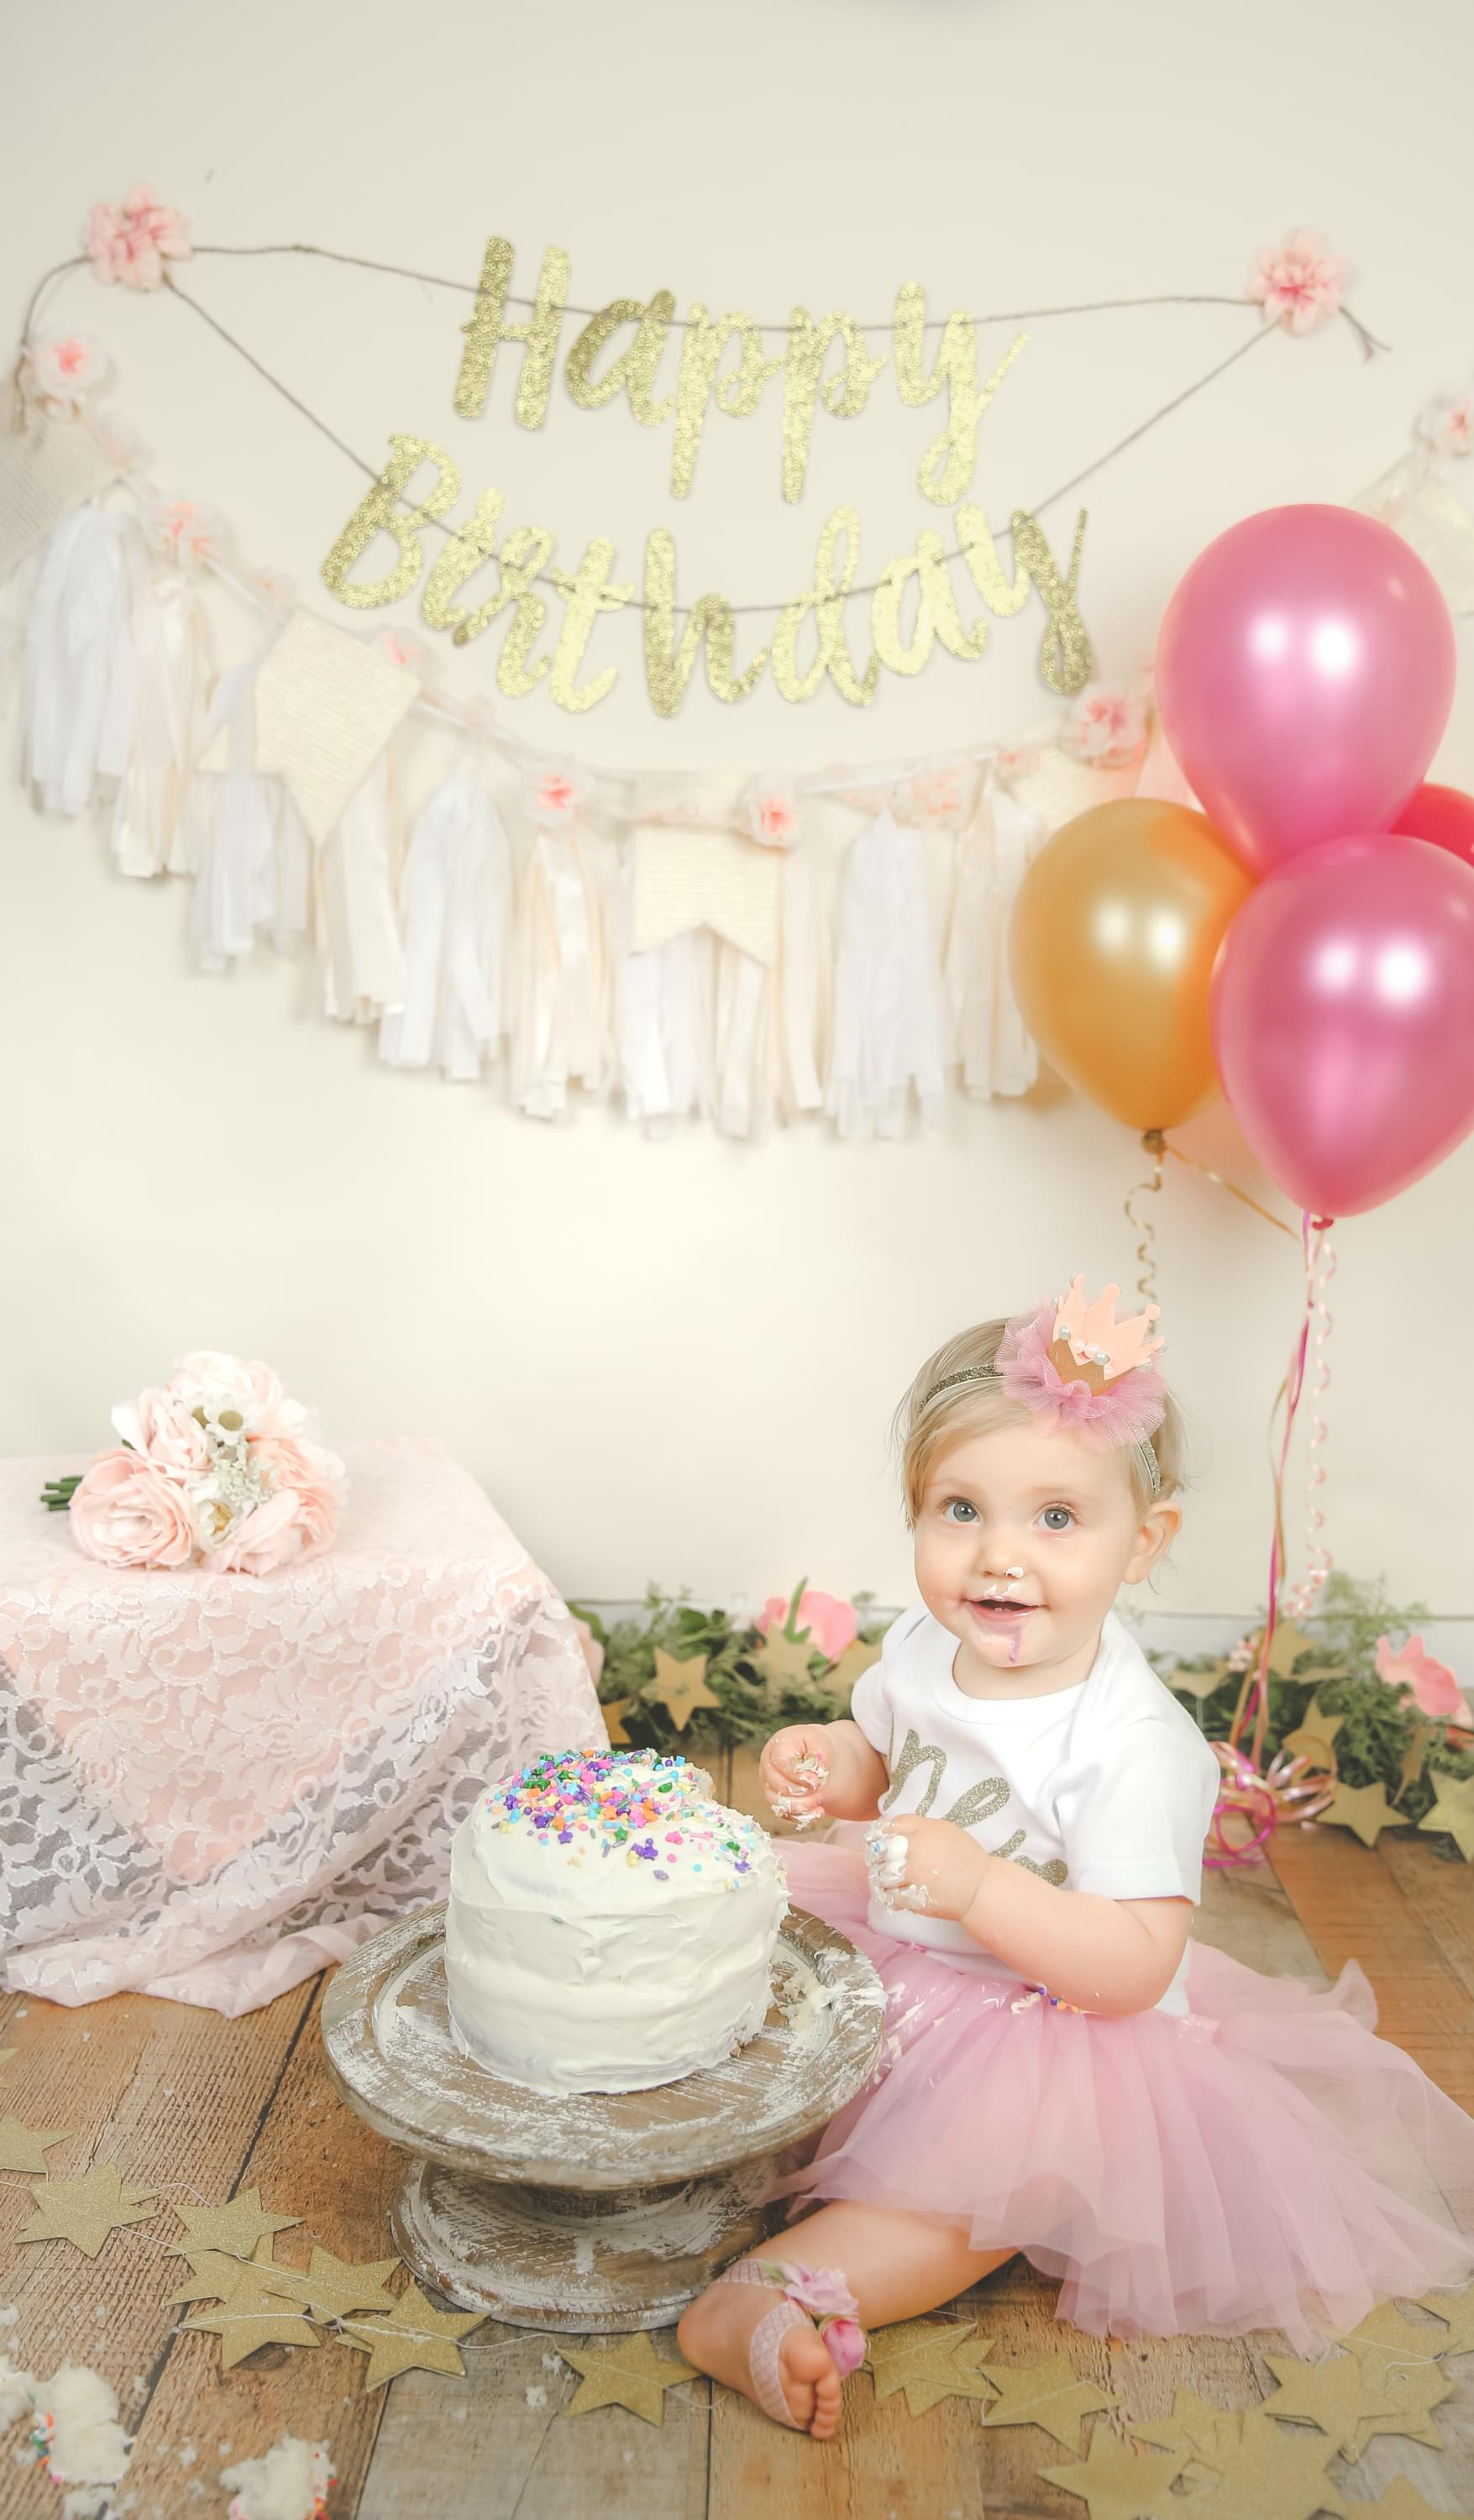 The Portraits Taken At A Cake Smash Will Be Unique Memorable And Make Incredible Decor Gifts For Your Home Family